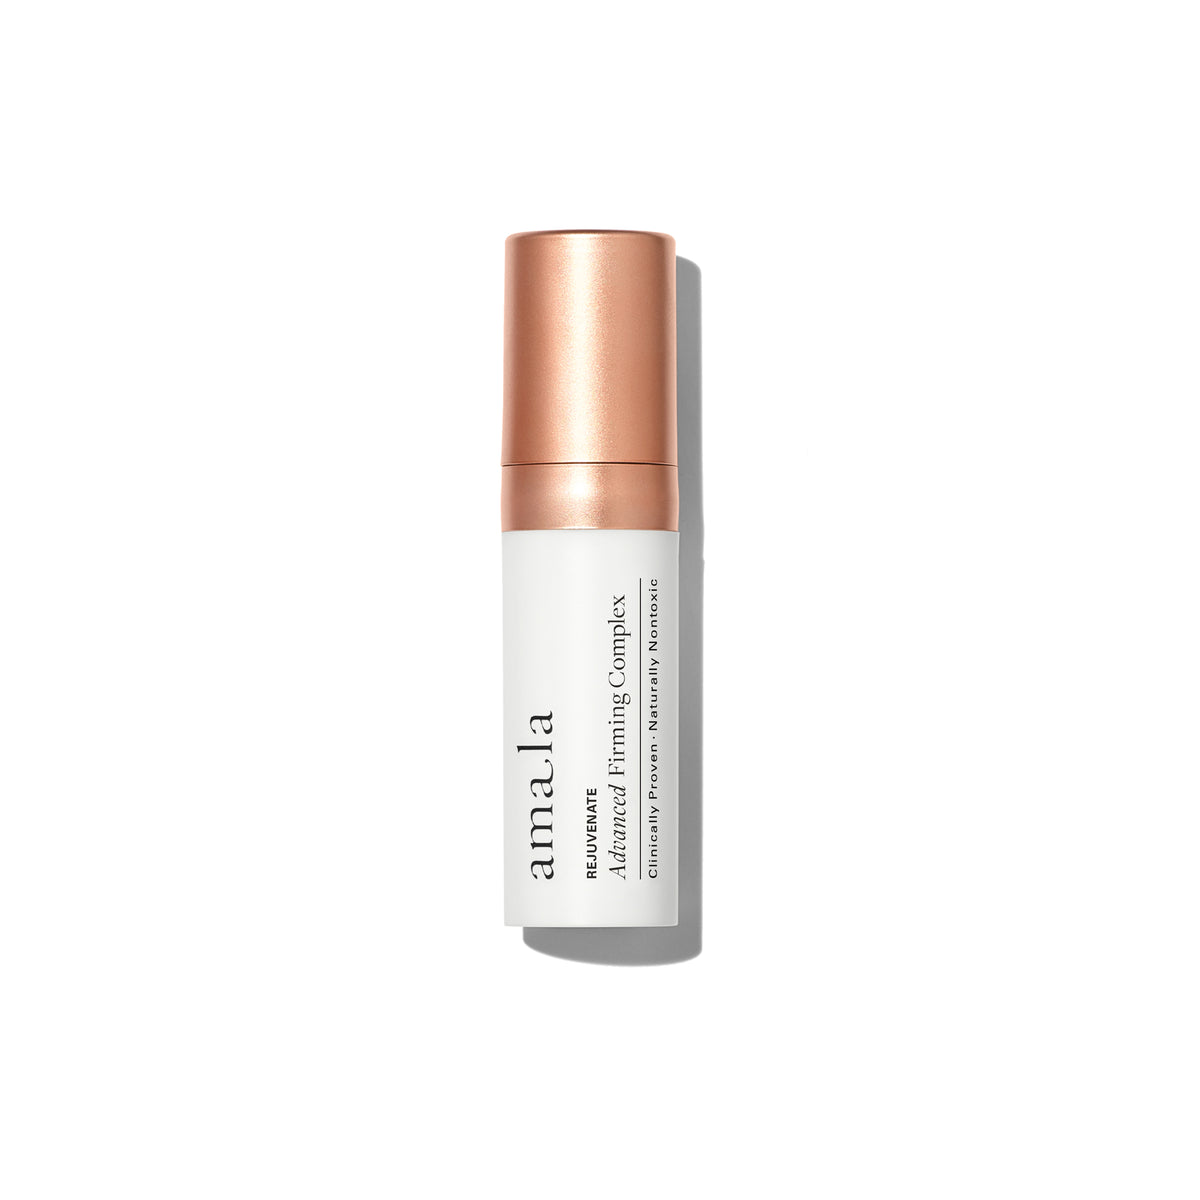 Advanced Firming Complex – 5mL